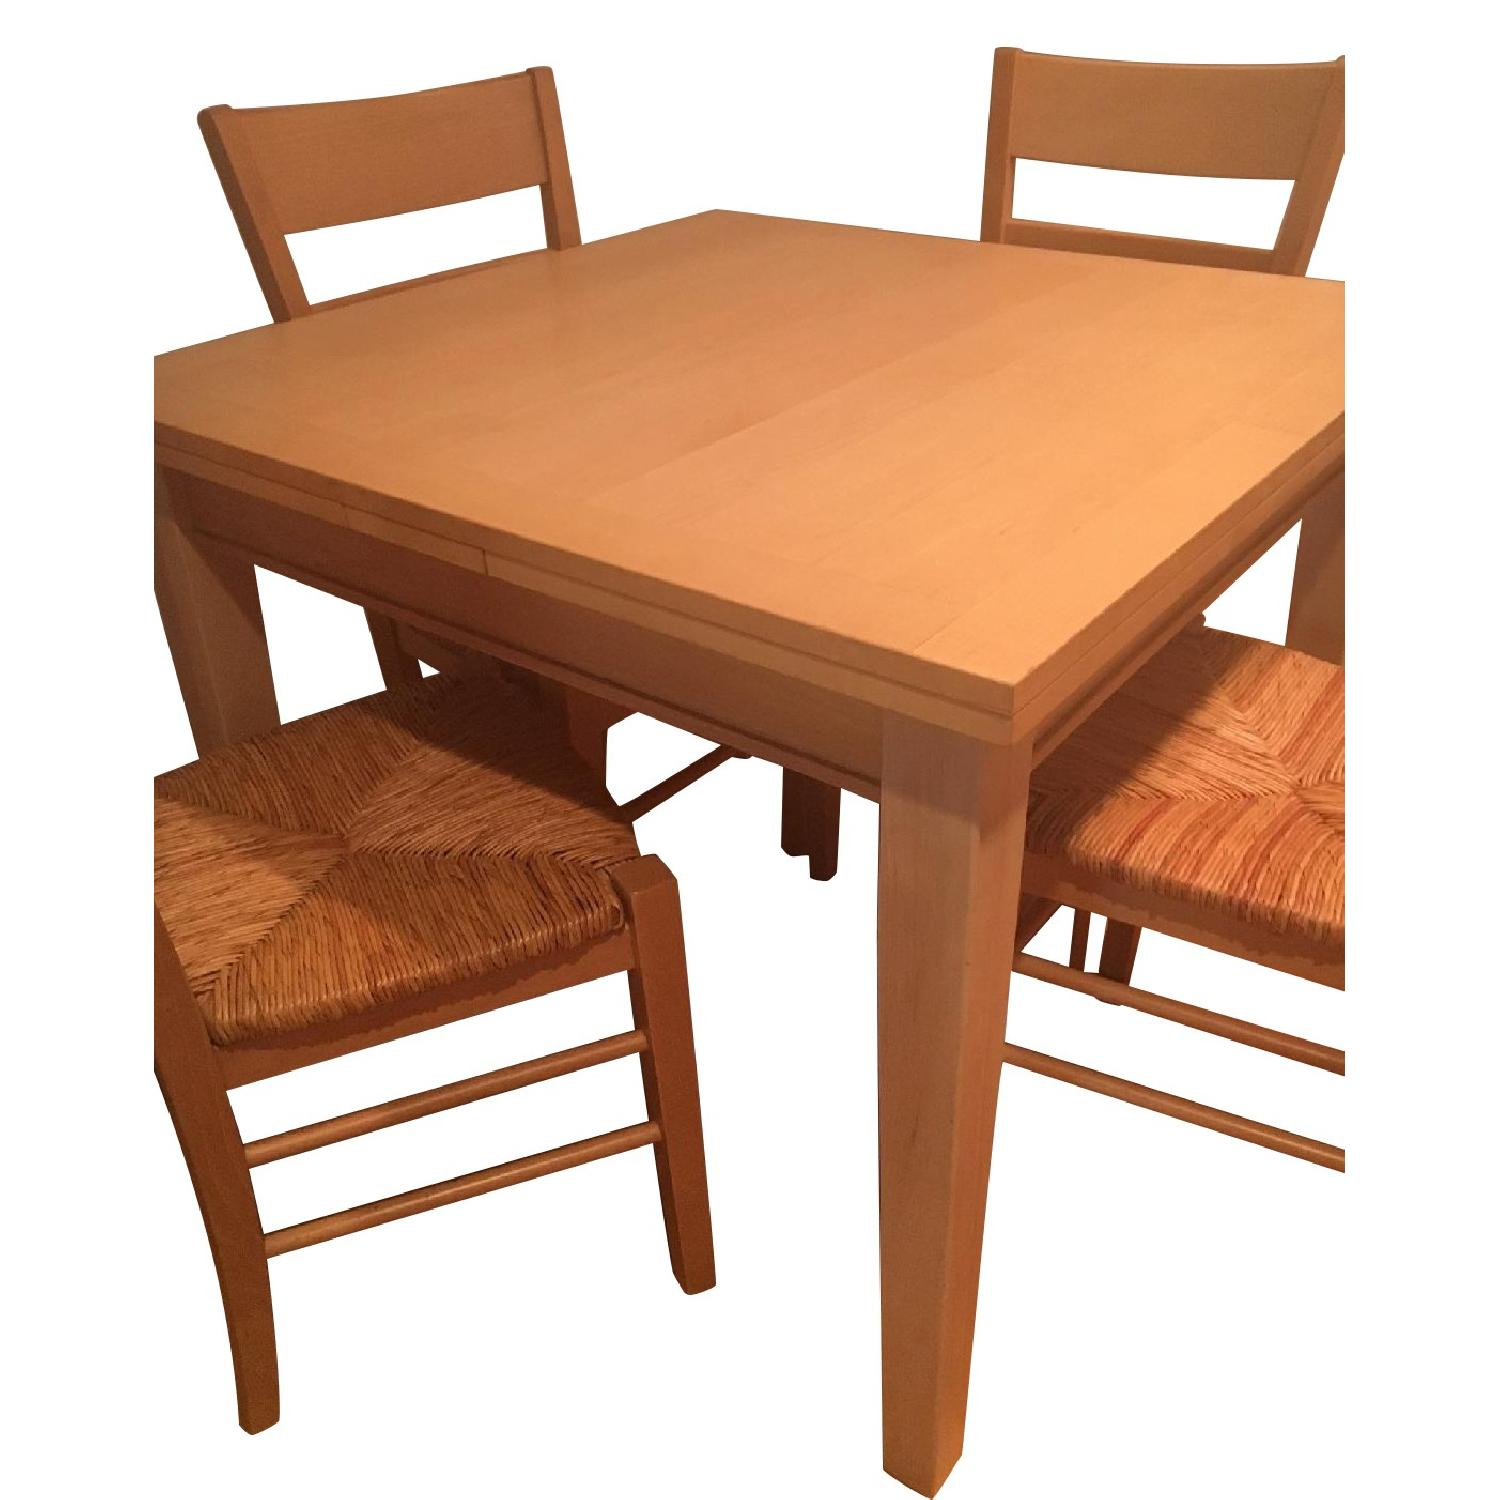 Kitchen Table 4 Chairs Crate barrel extendable kitchen table w 4 chairs aptdeco crate barrel extendable kitchen table w 4 chairs workwithnaturefo